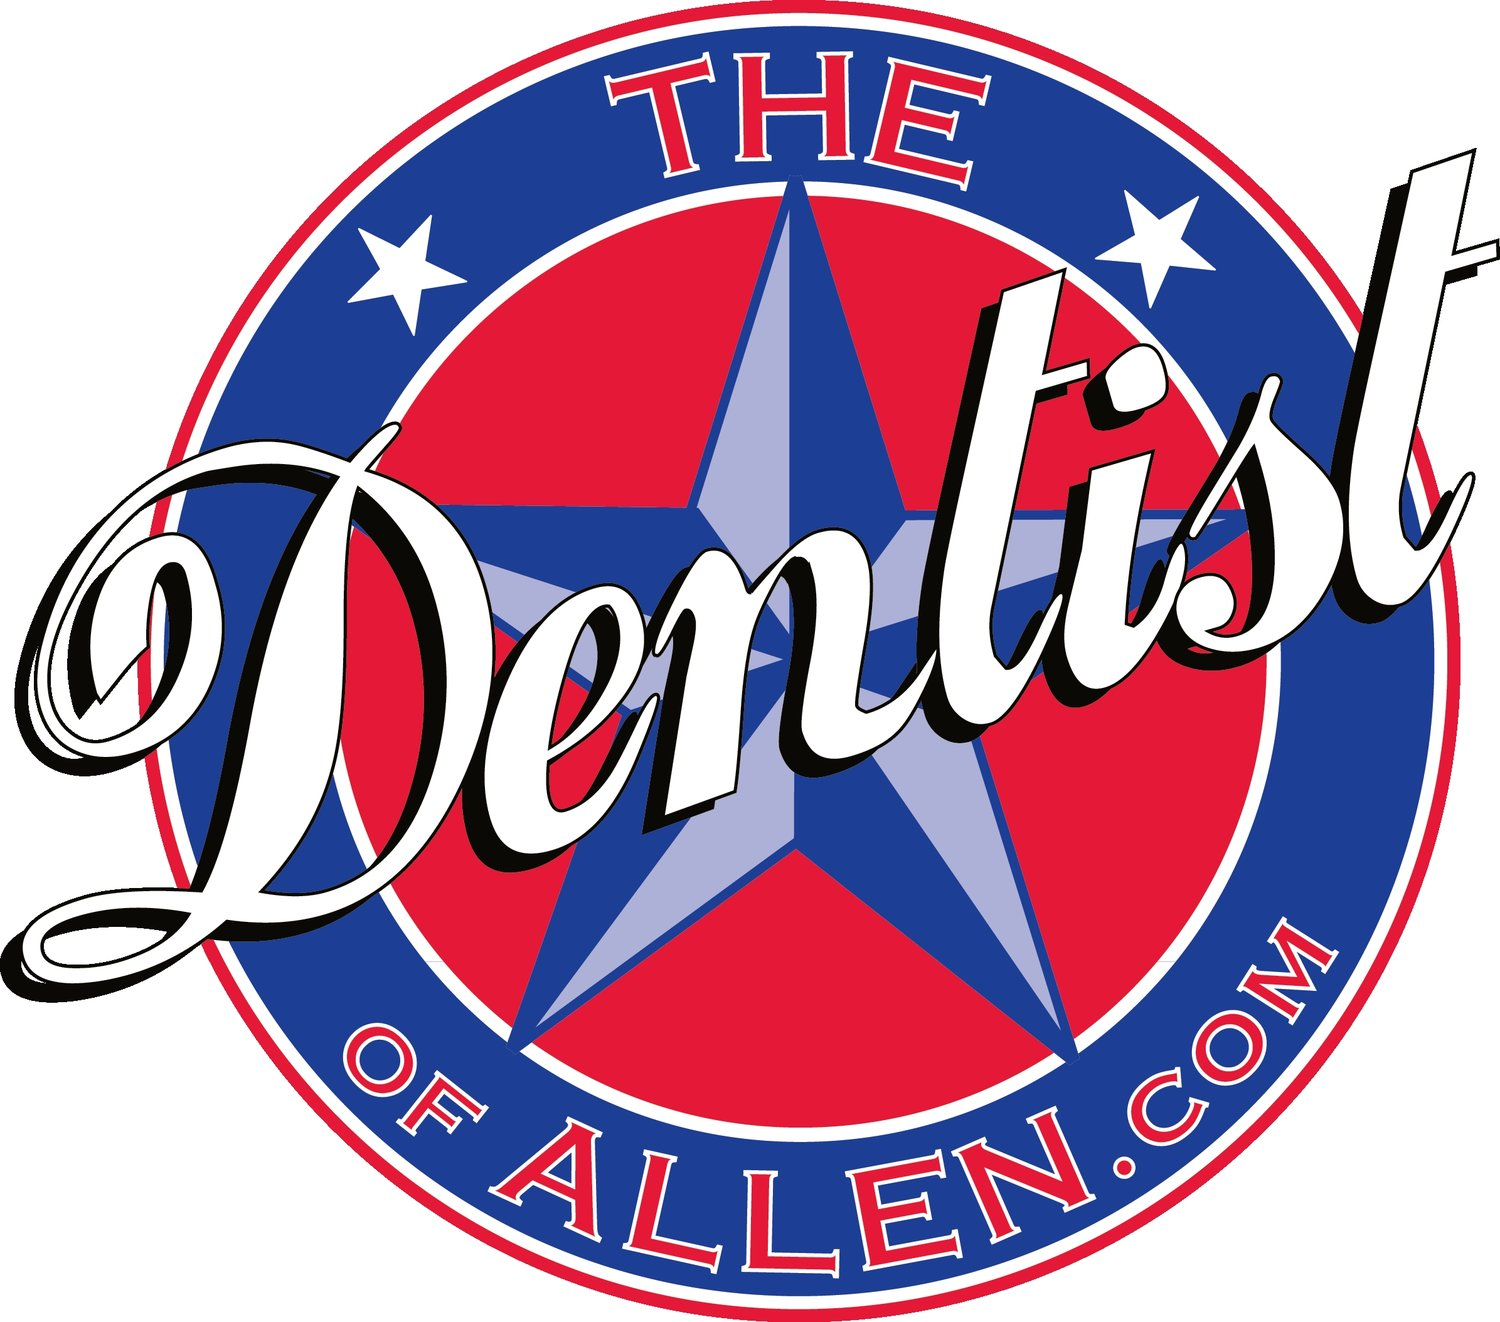 The Dentist of Allen